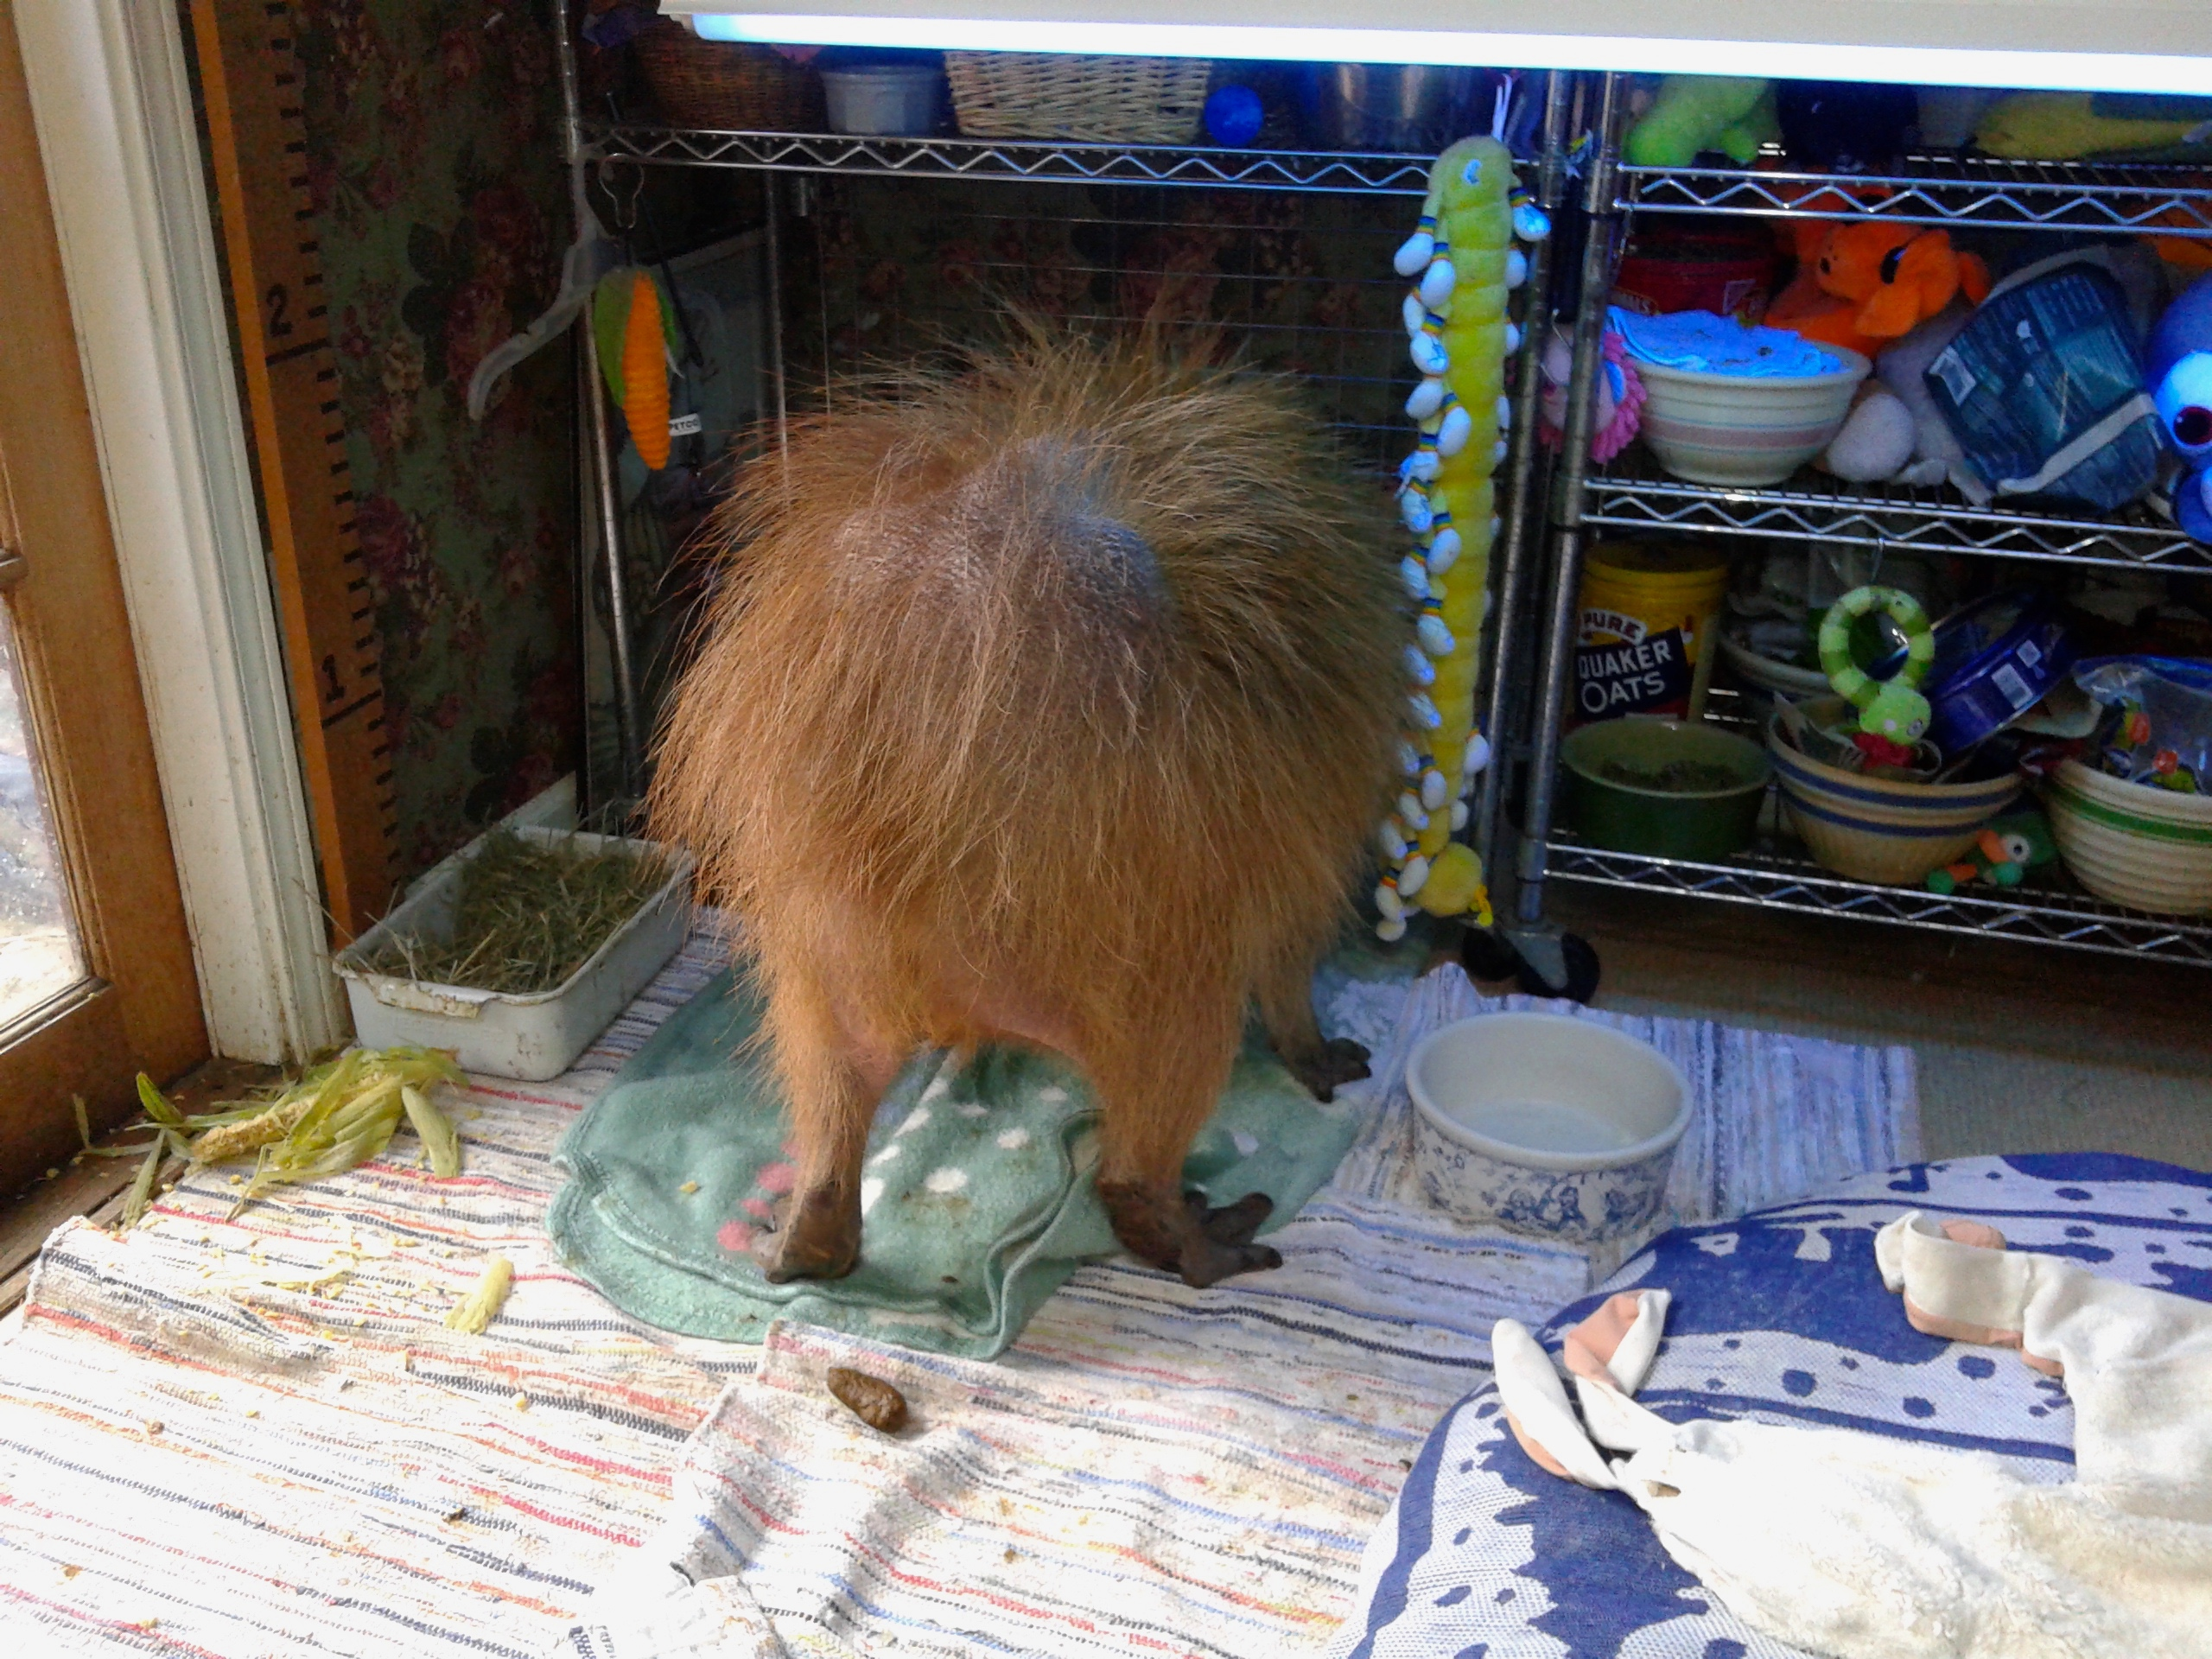 How Not to Care for a Pet Capybara